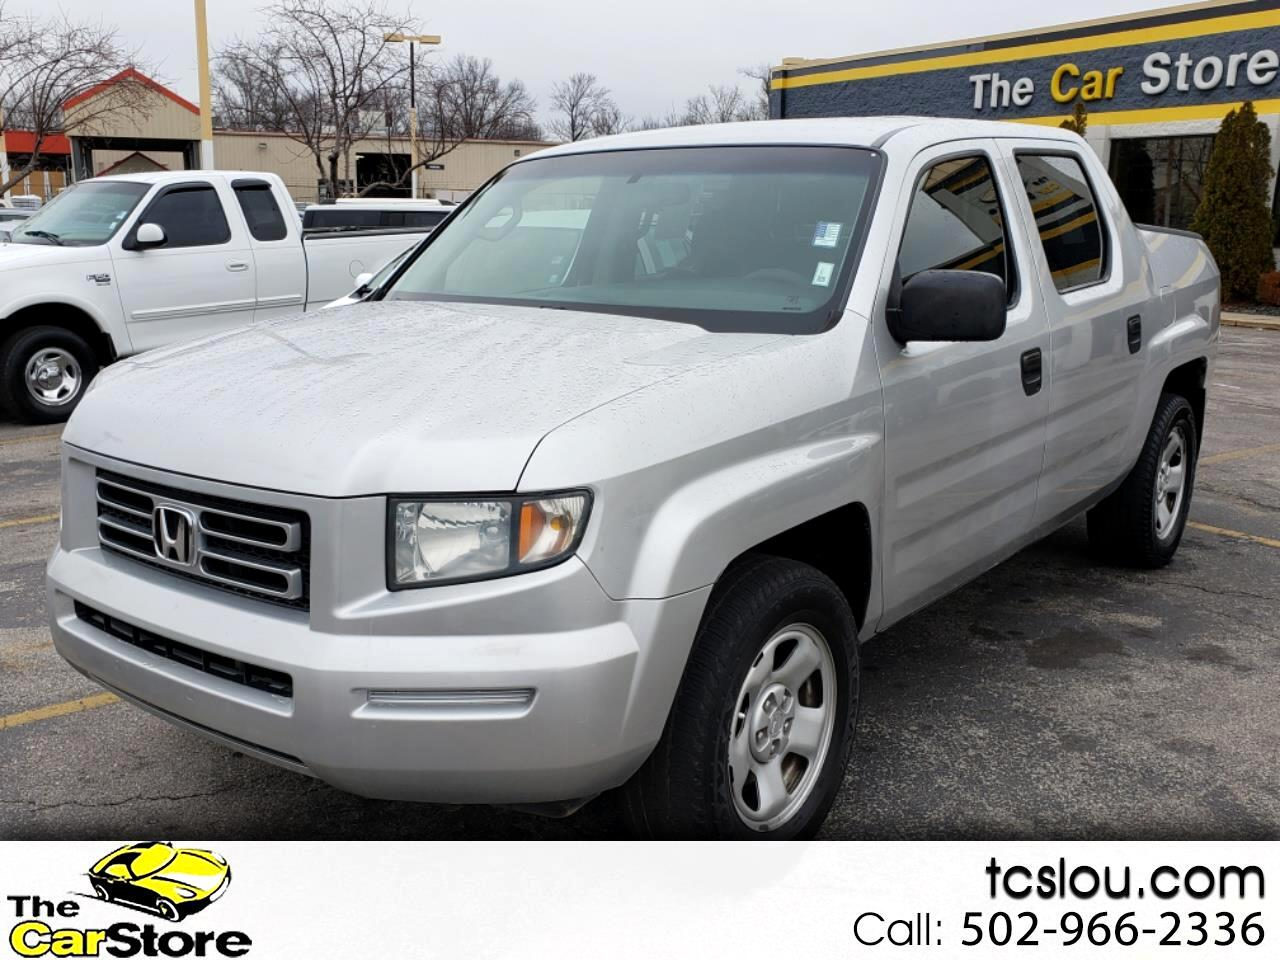 2006 Honda Ridgeline RT AT